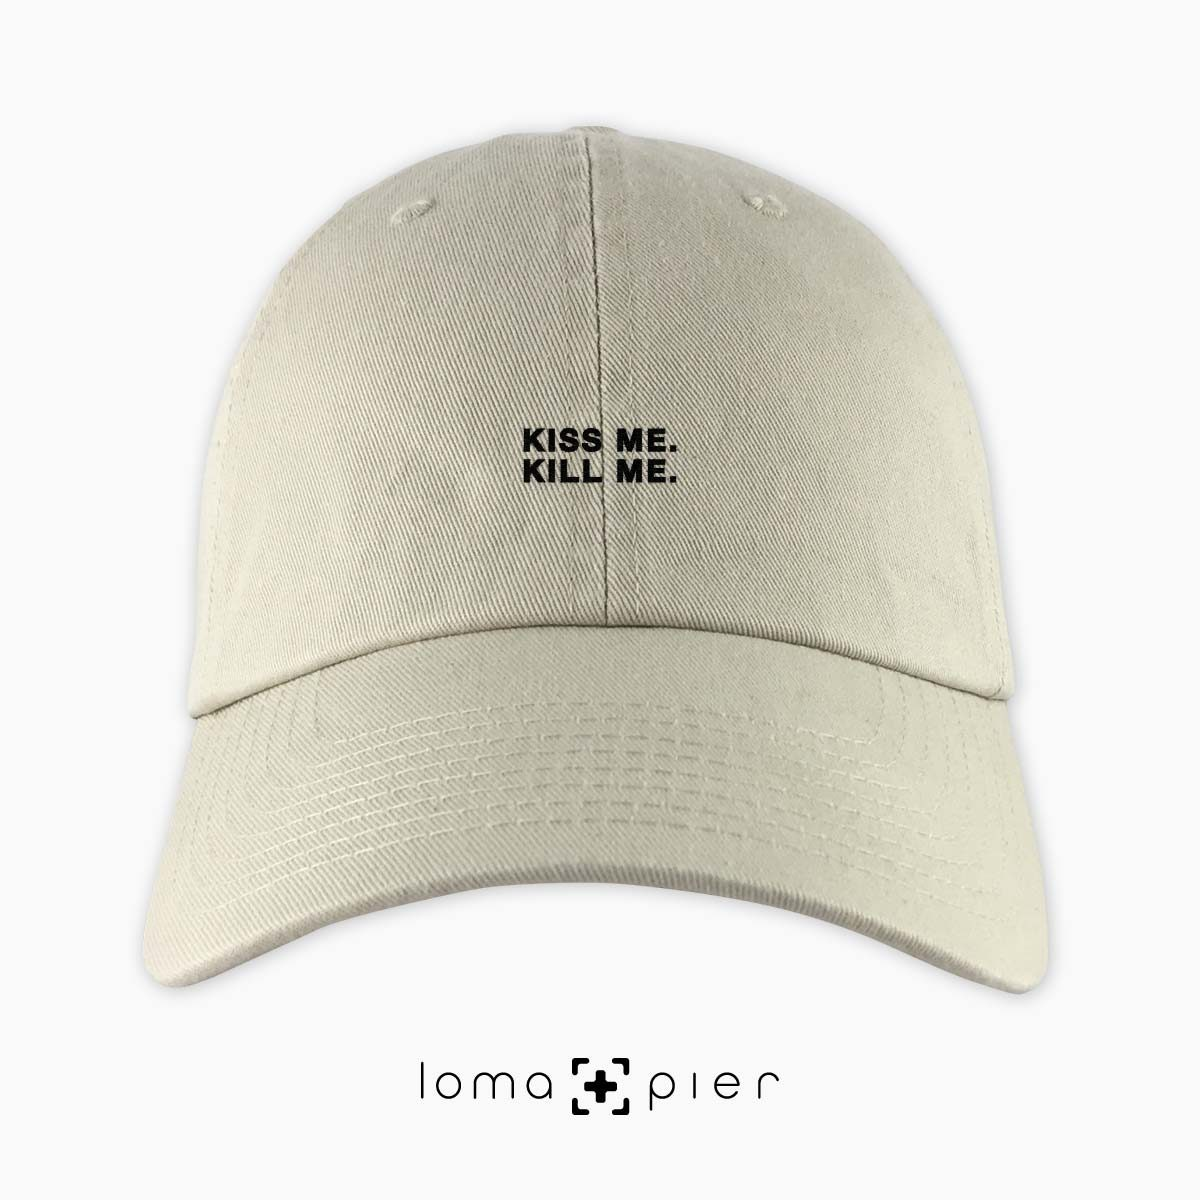 KISS ME. KILL ME. typography embroidered on a khaki unstructured dad hat with black thread by loma+pier hat store made in the USA